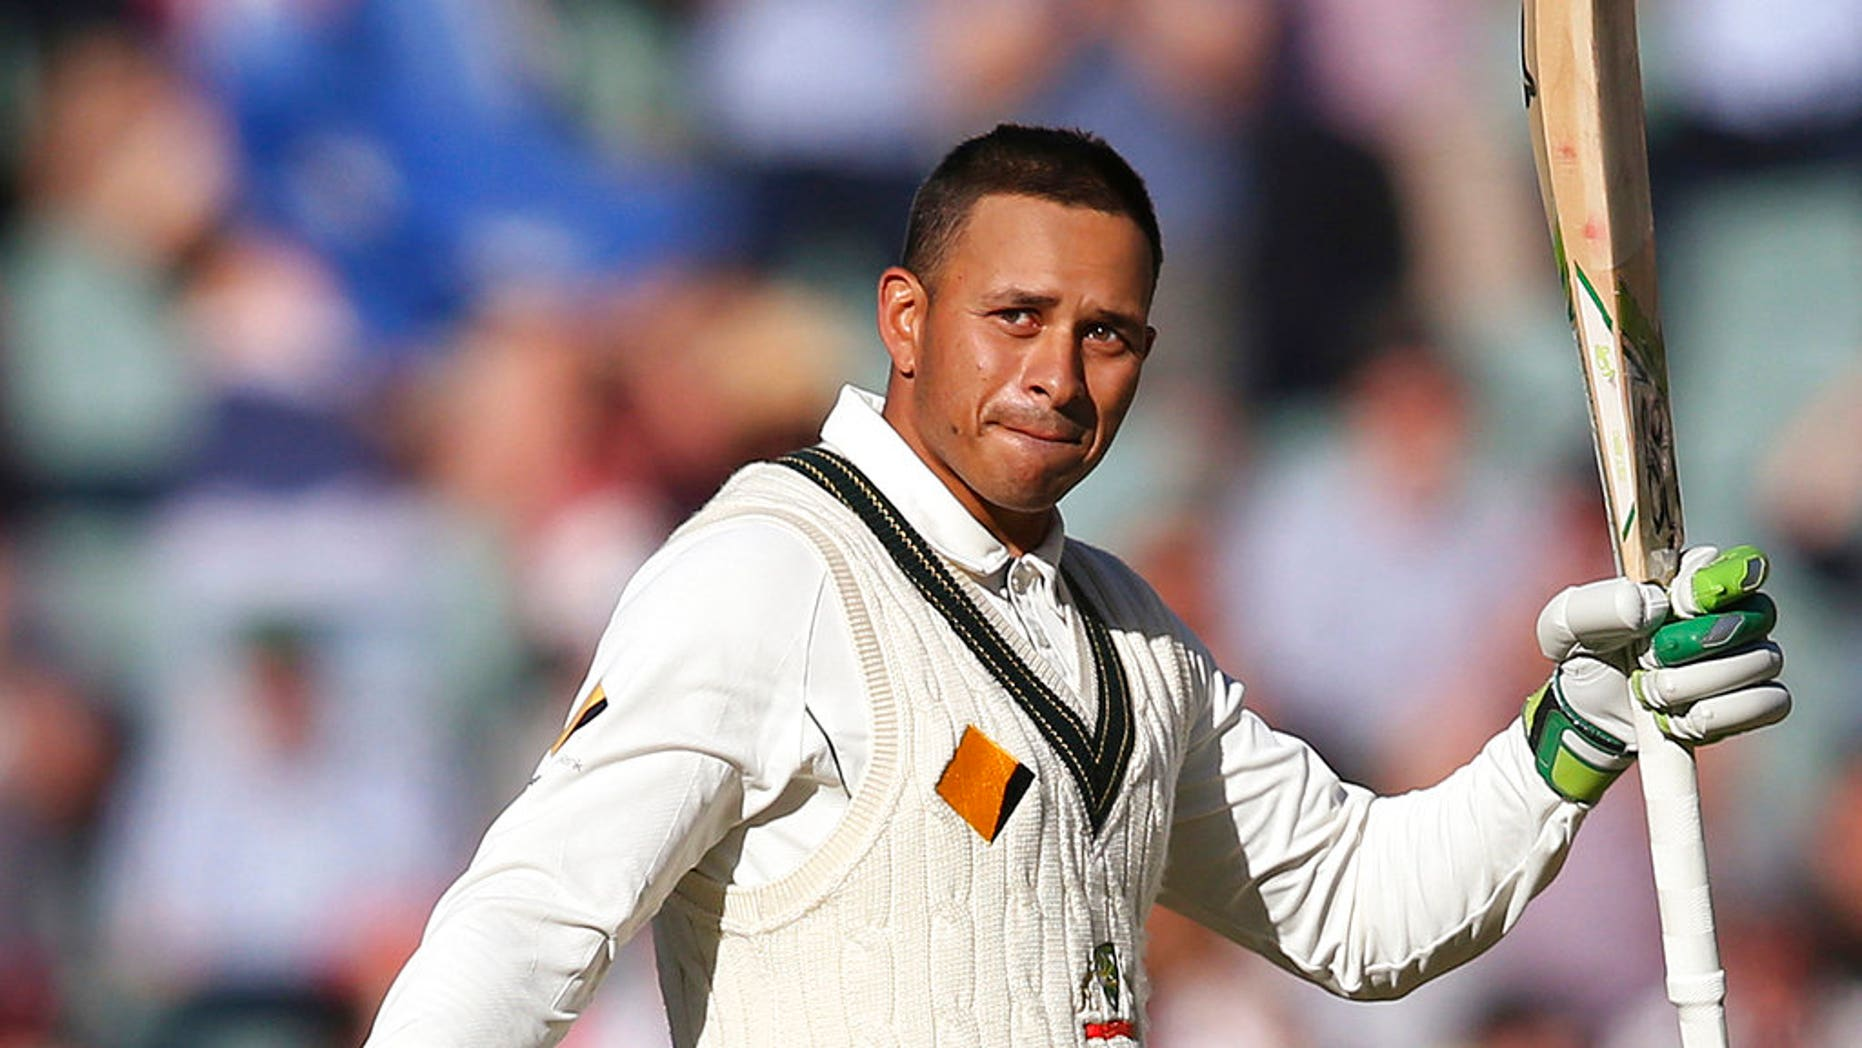 Brother of Australia cricketer Usman Khawaja arrested over fake terror 'hit list'